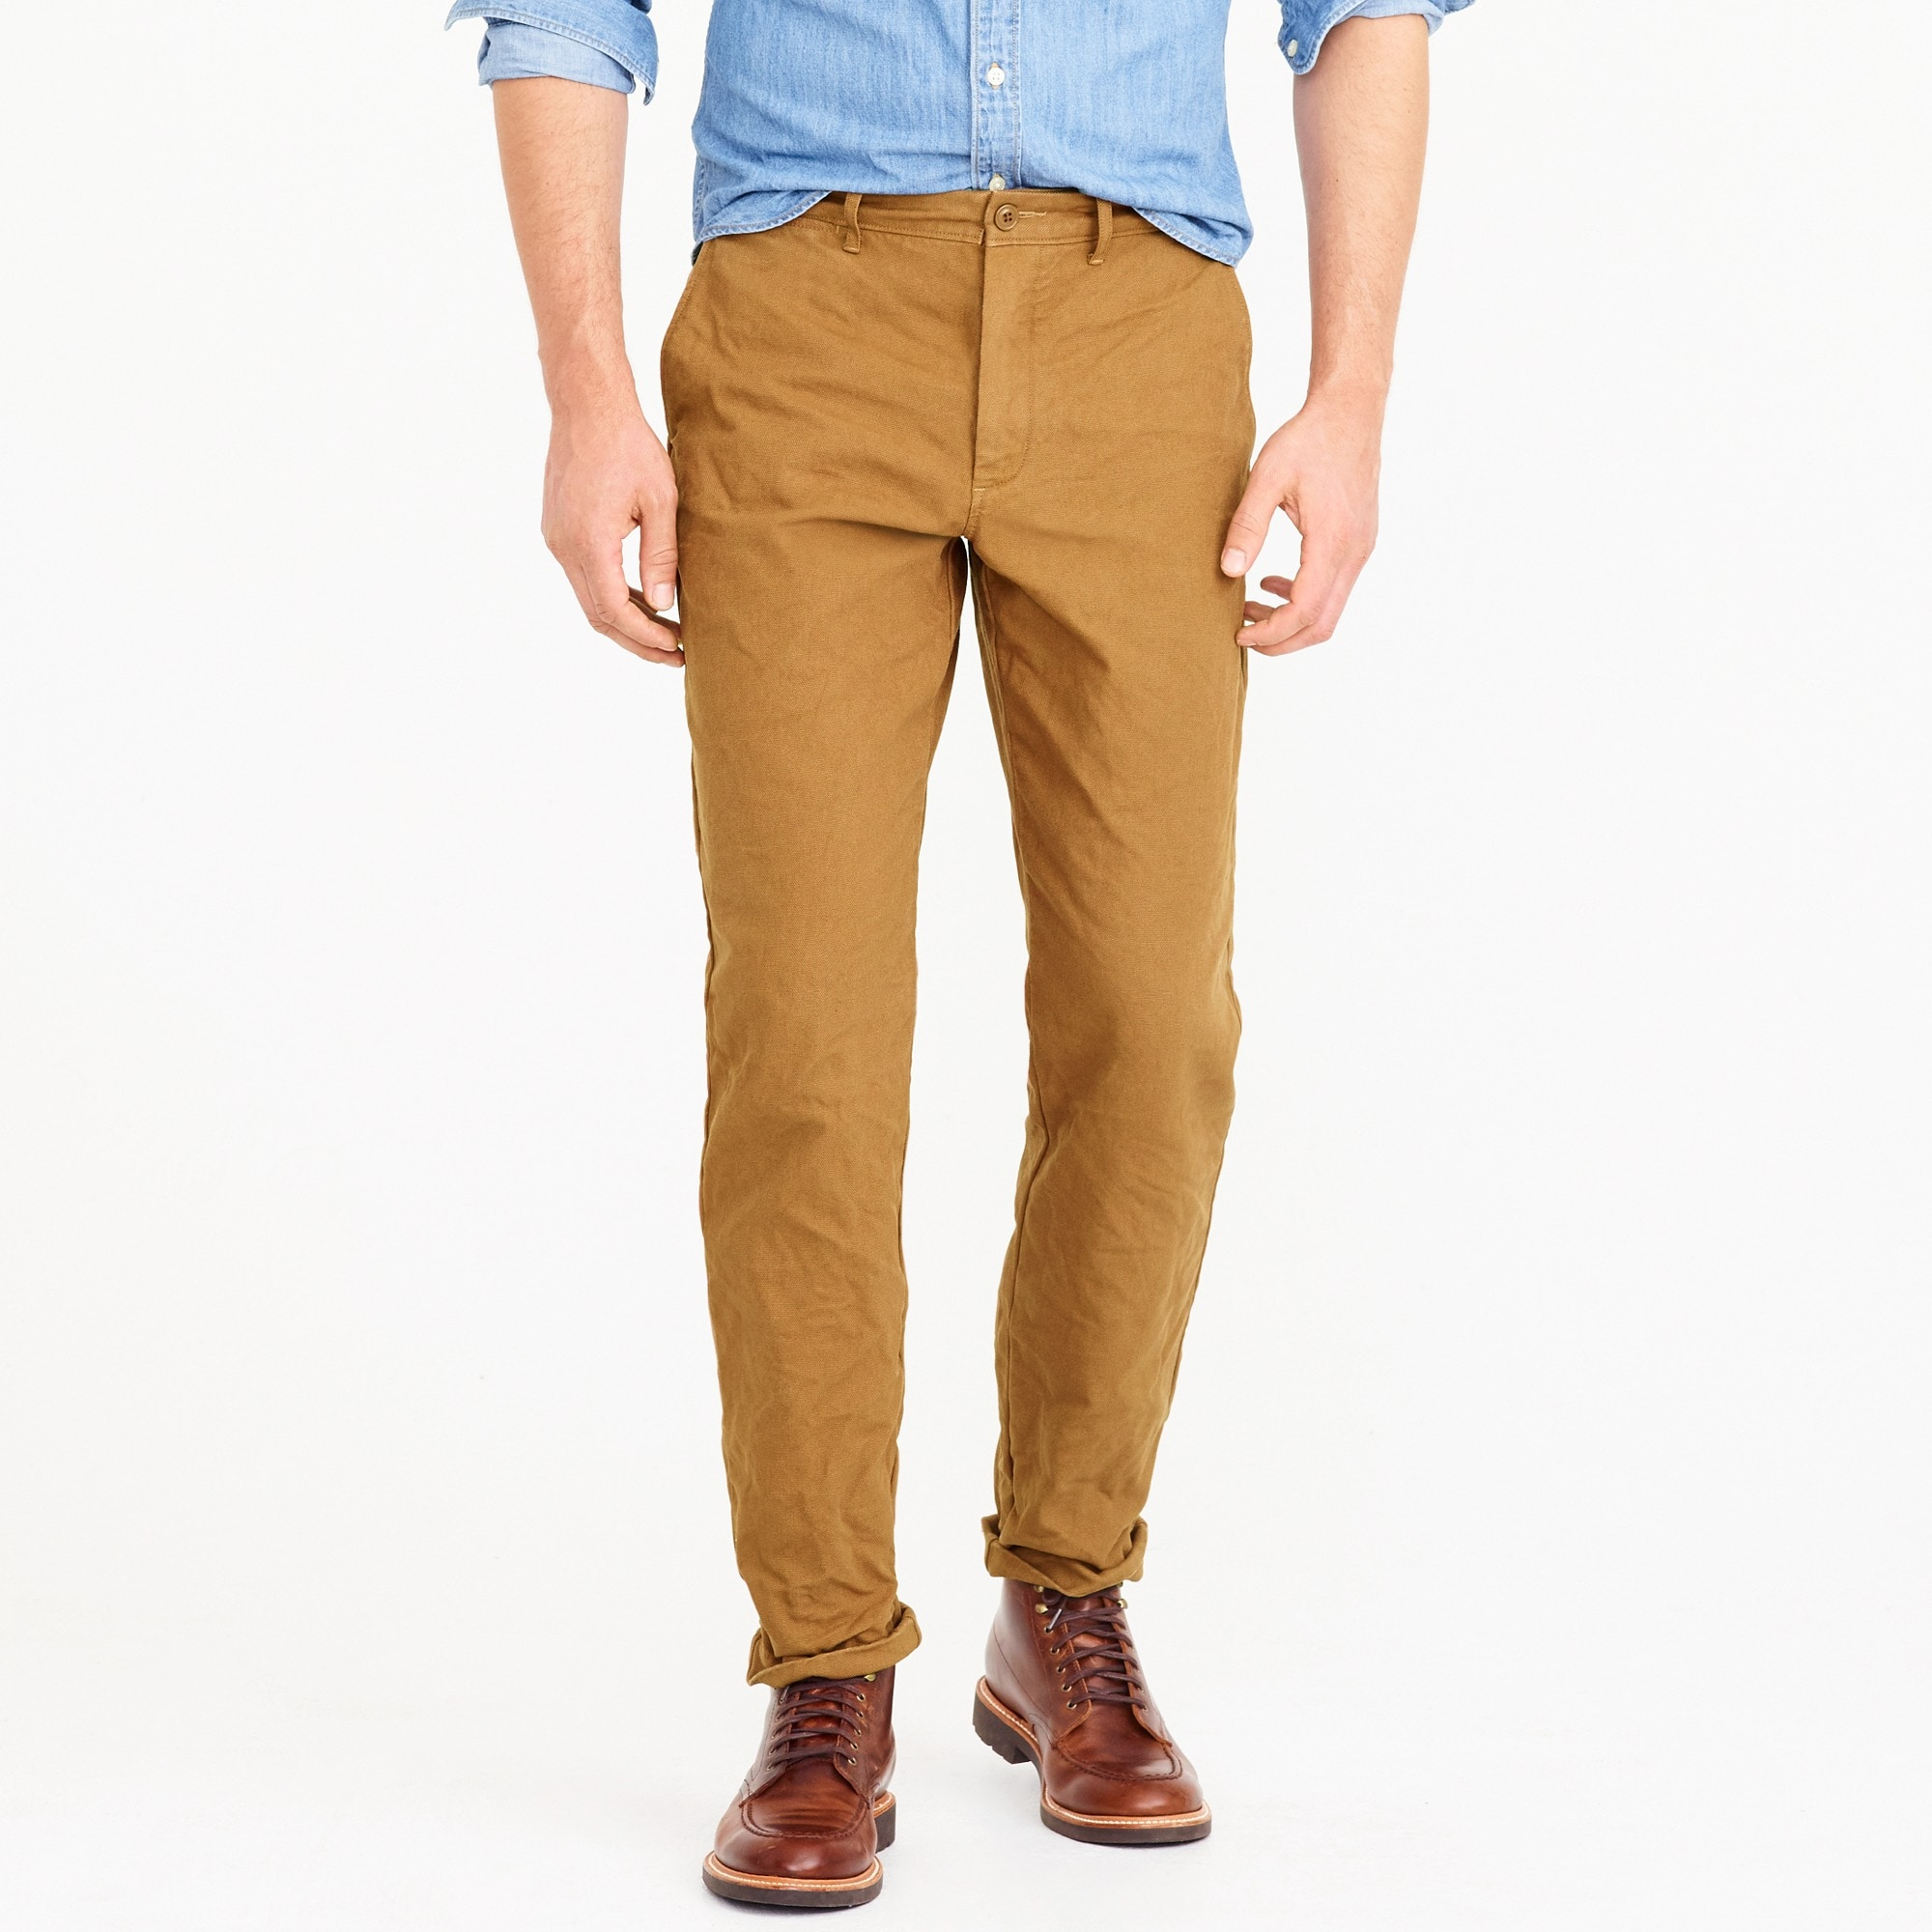 1040 Athletic-fit chino pant in garment-dyed canvas